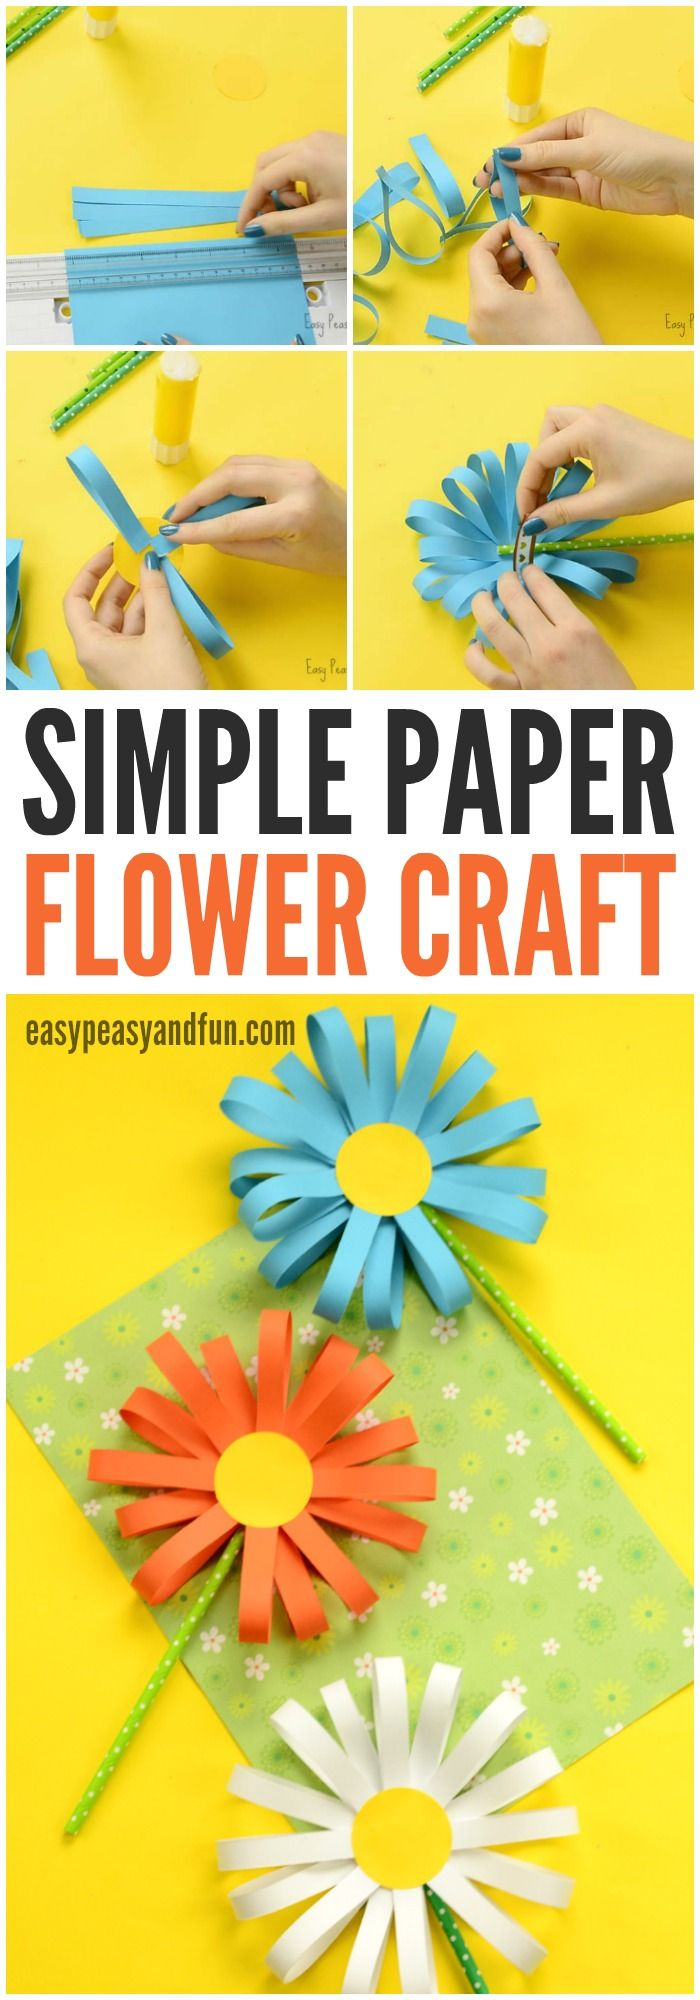 This simple paper flower craft is a fun spring activity for kids!